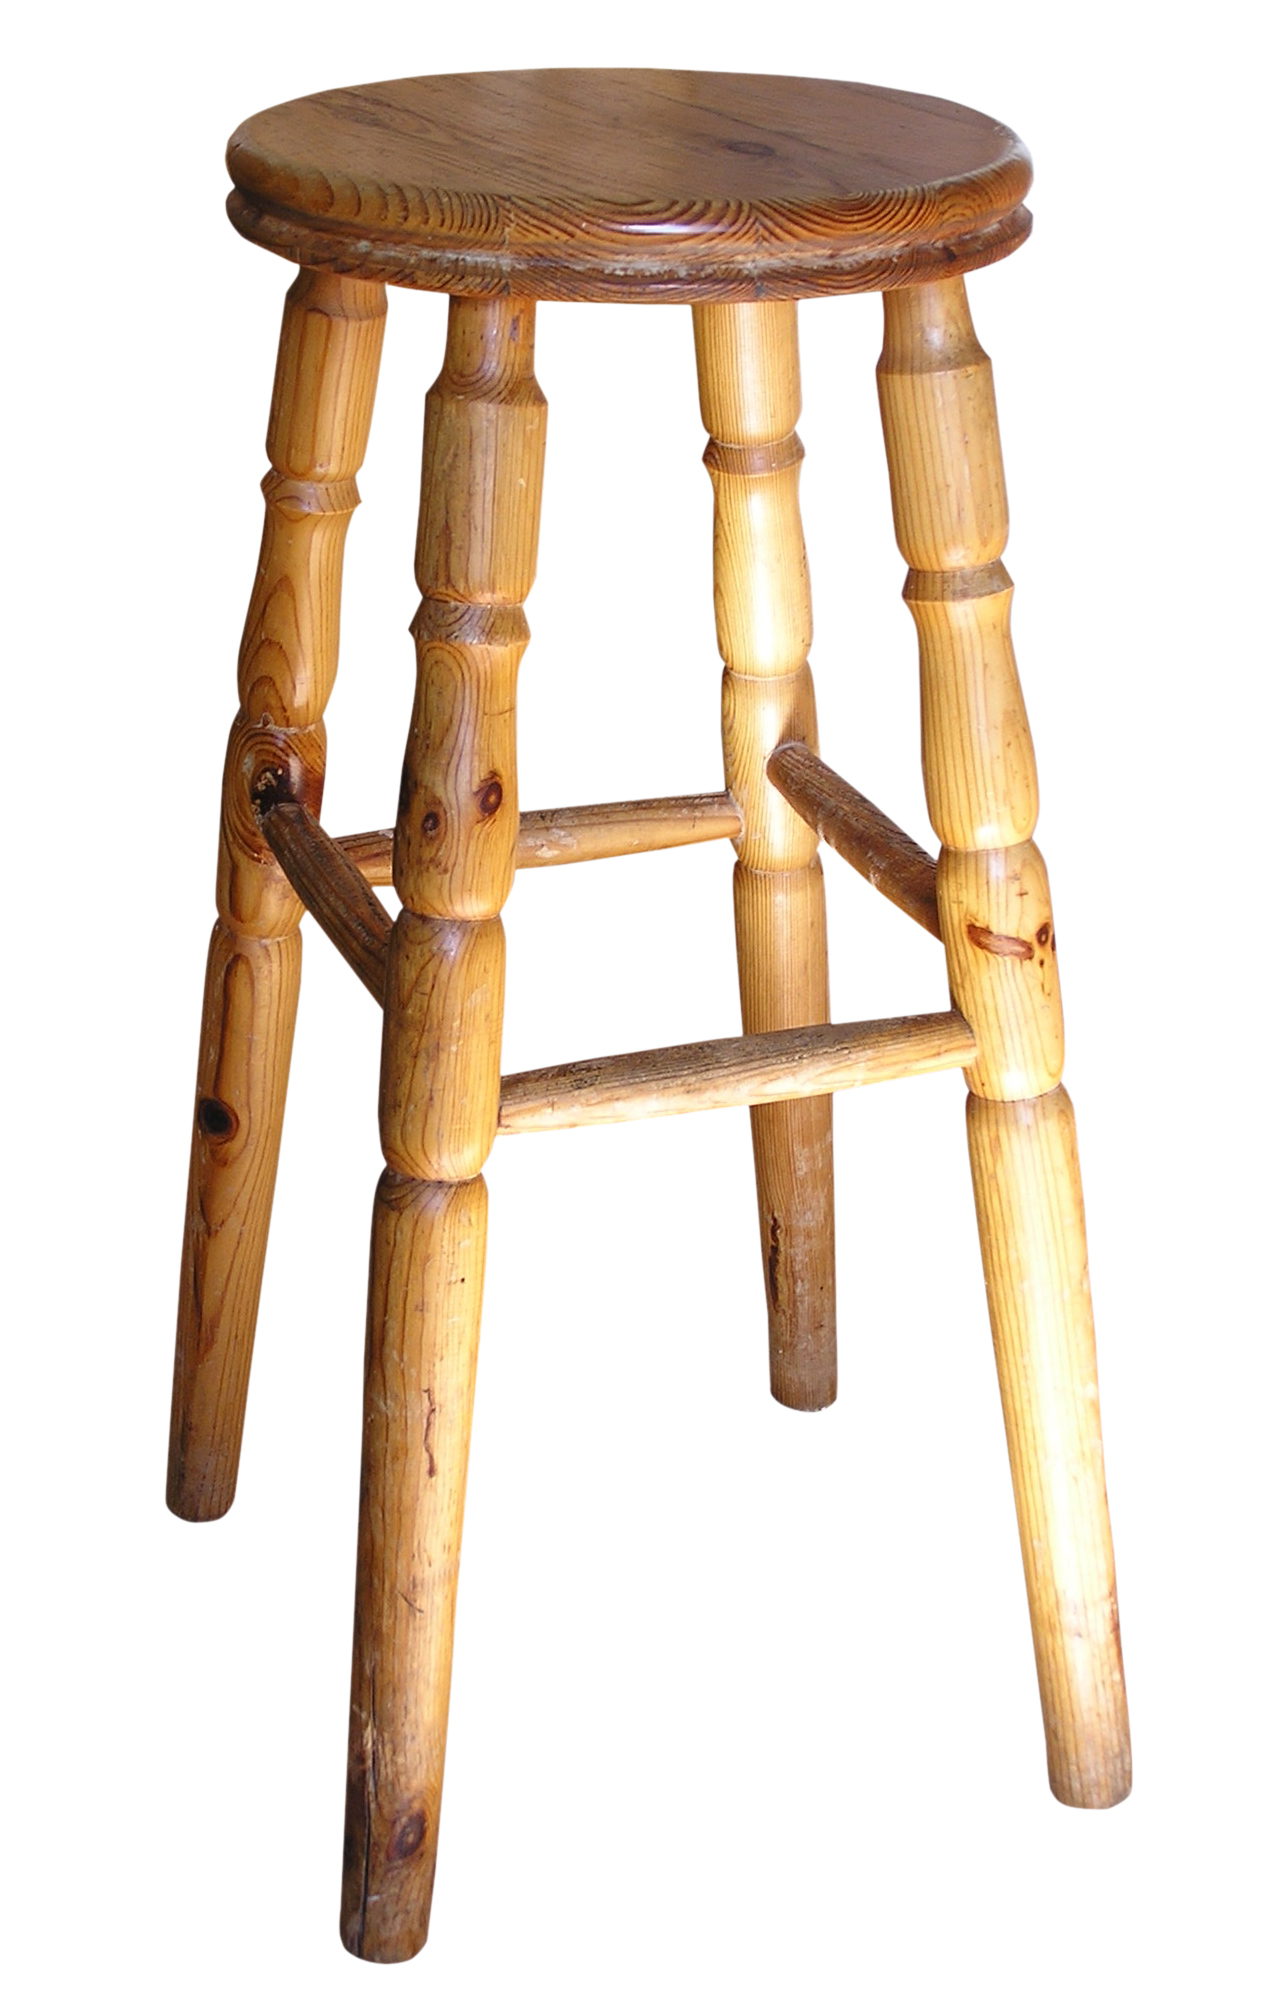 The Four-Legged Stool. stool